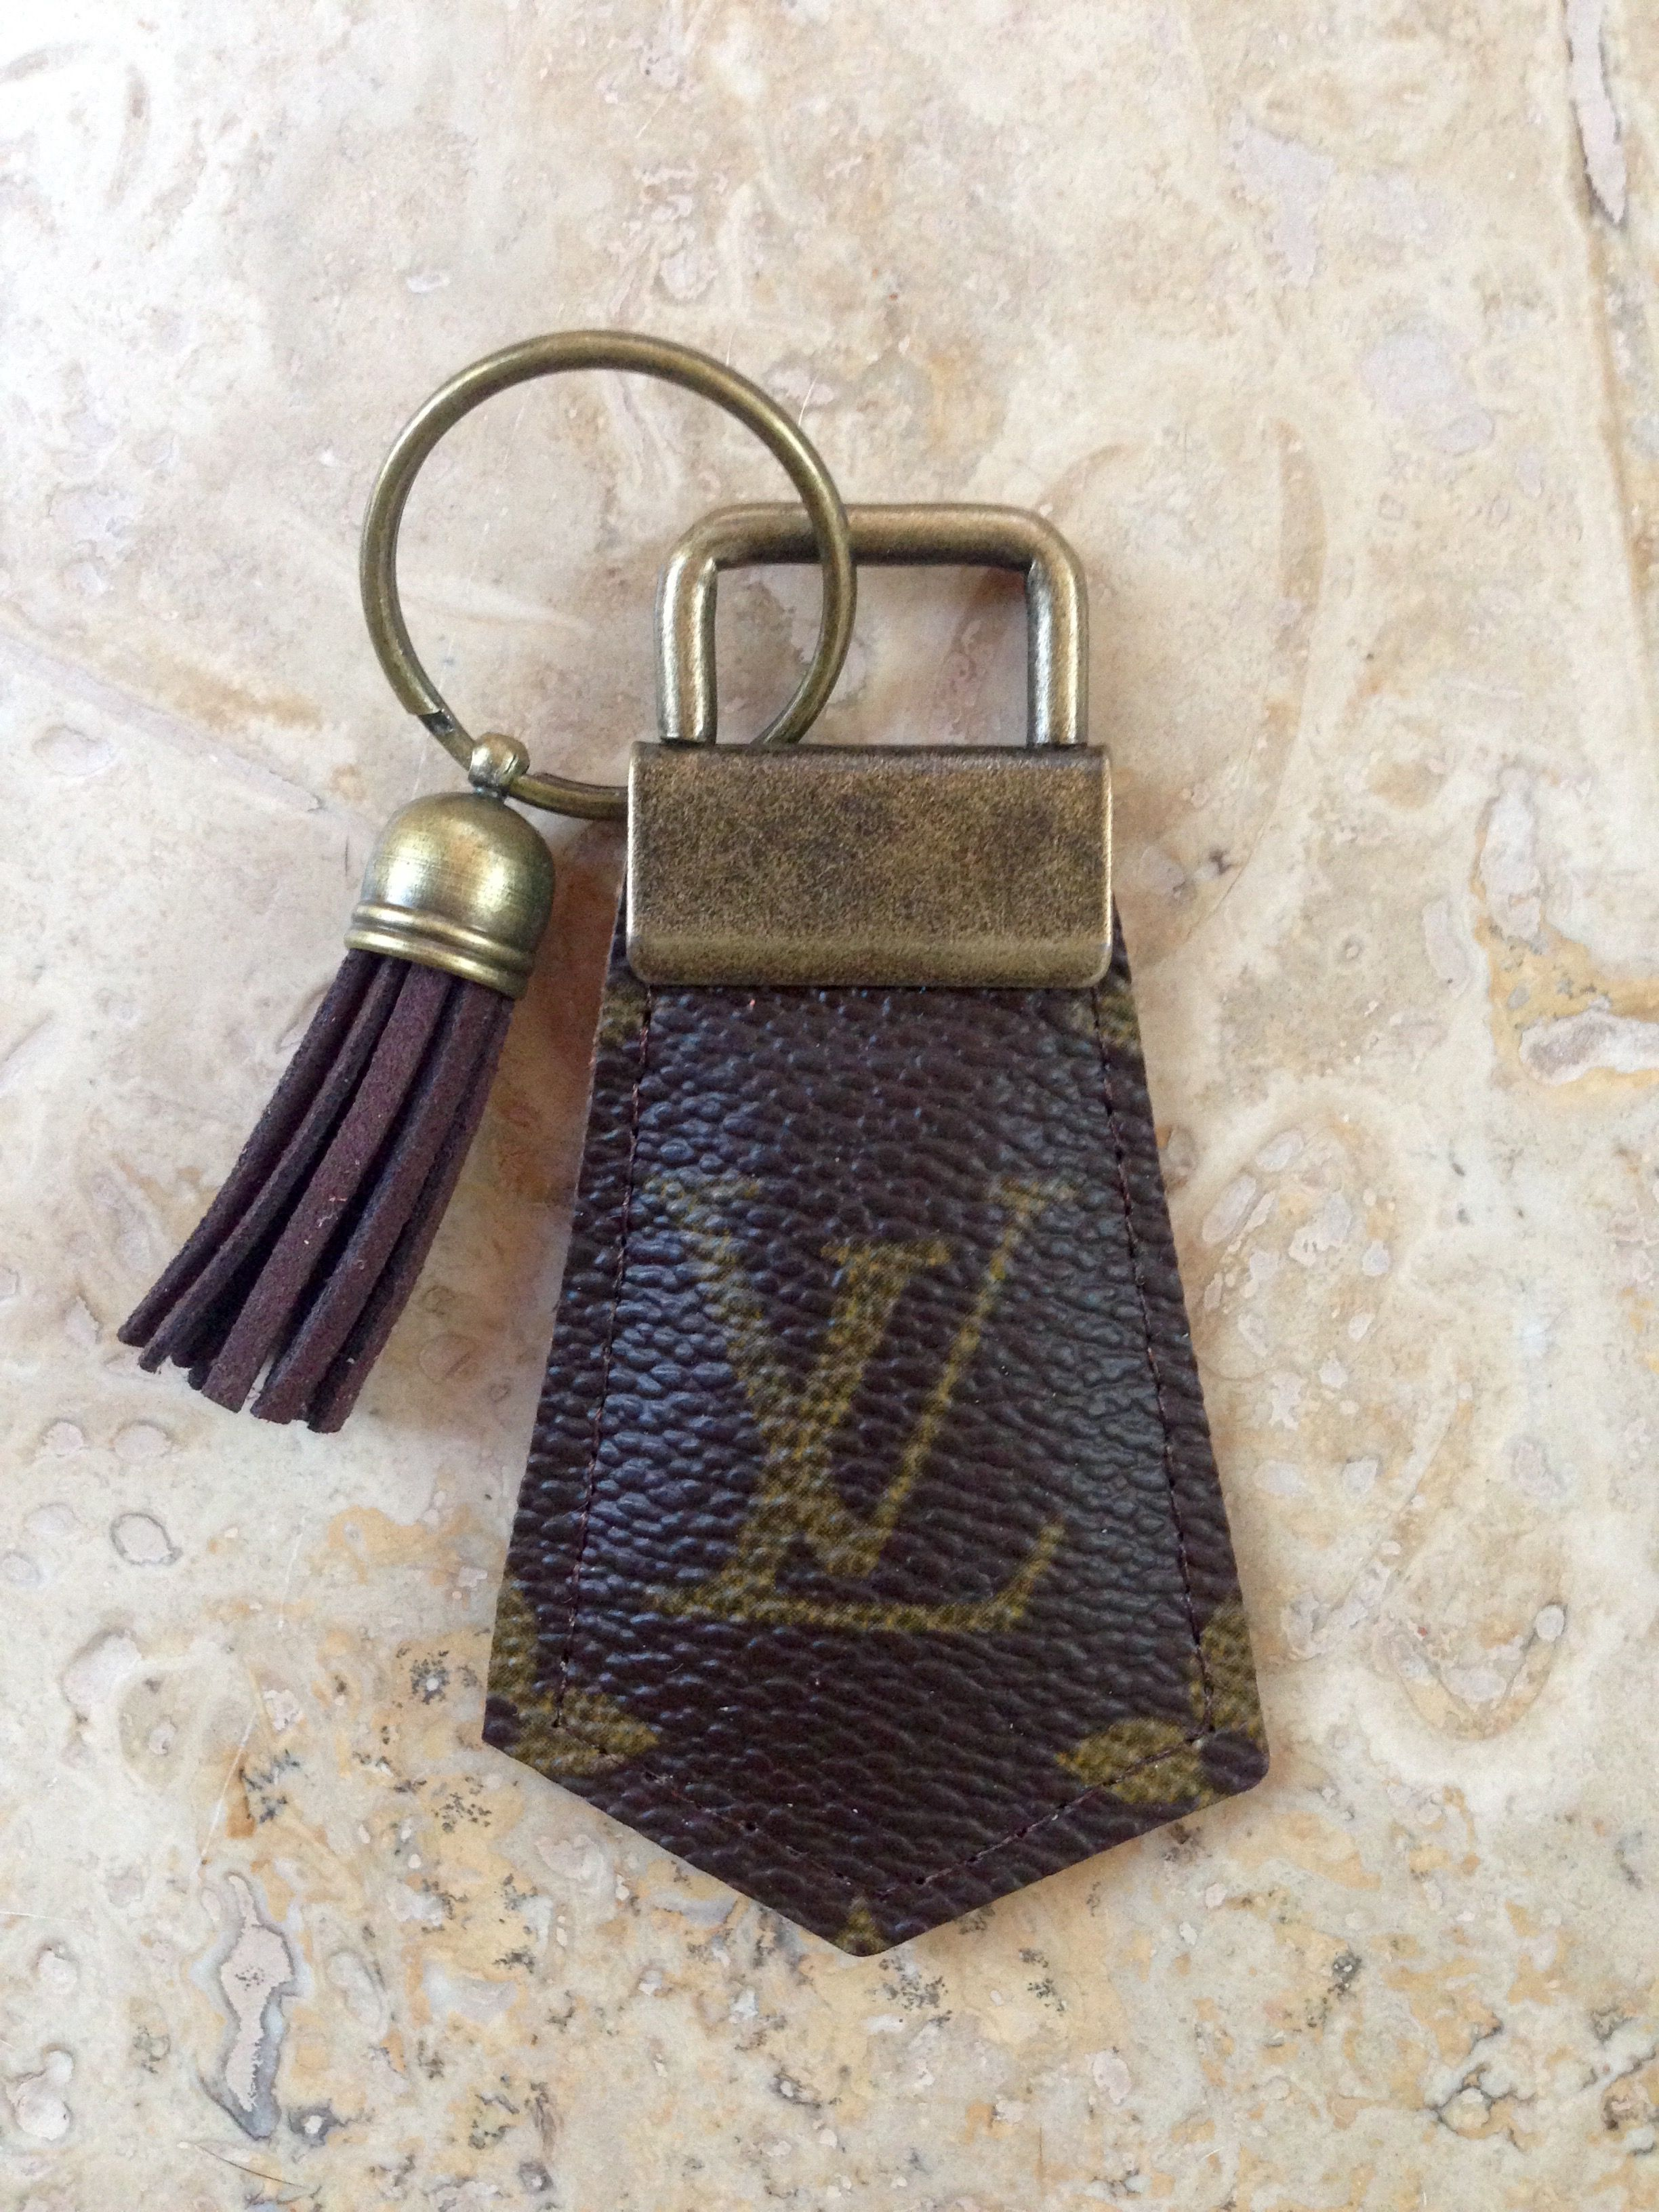 77fb6c50c317 Awesome repurposed Louis Vuitton keychain on eBay-see seller fob ulous